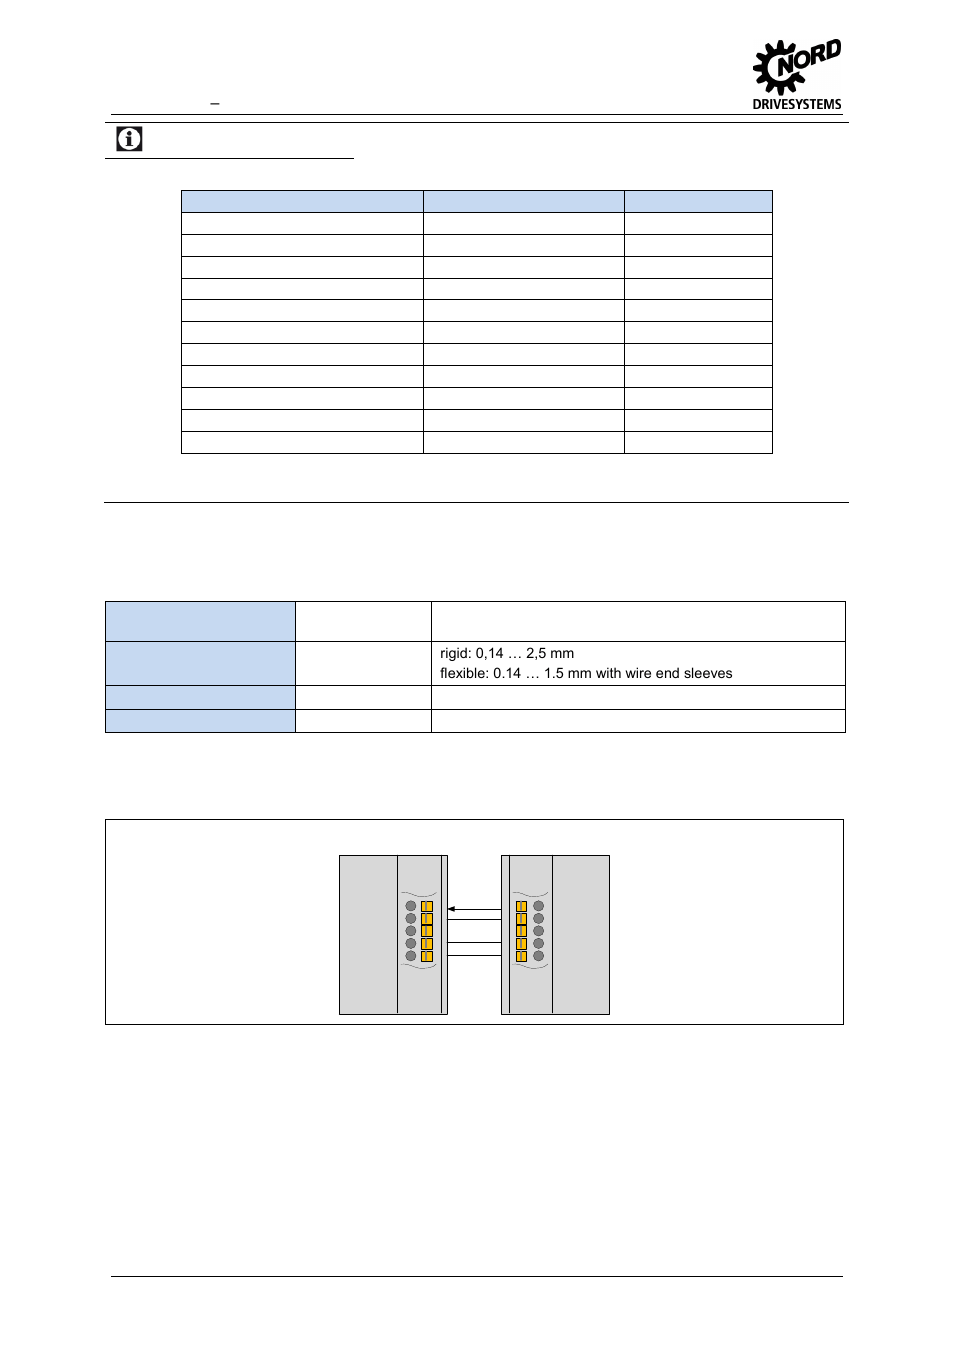 hight resolution of connections information m12 round plug connectors nord drivesystems ti 275281206 user manual